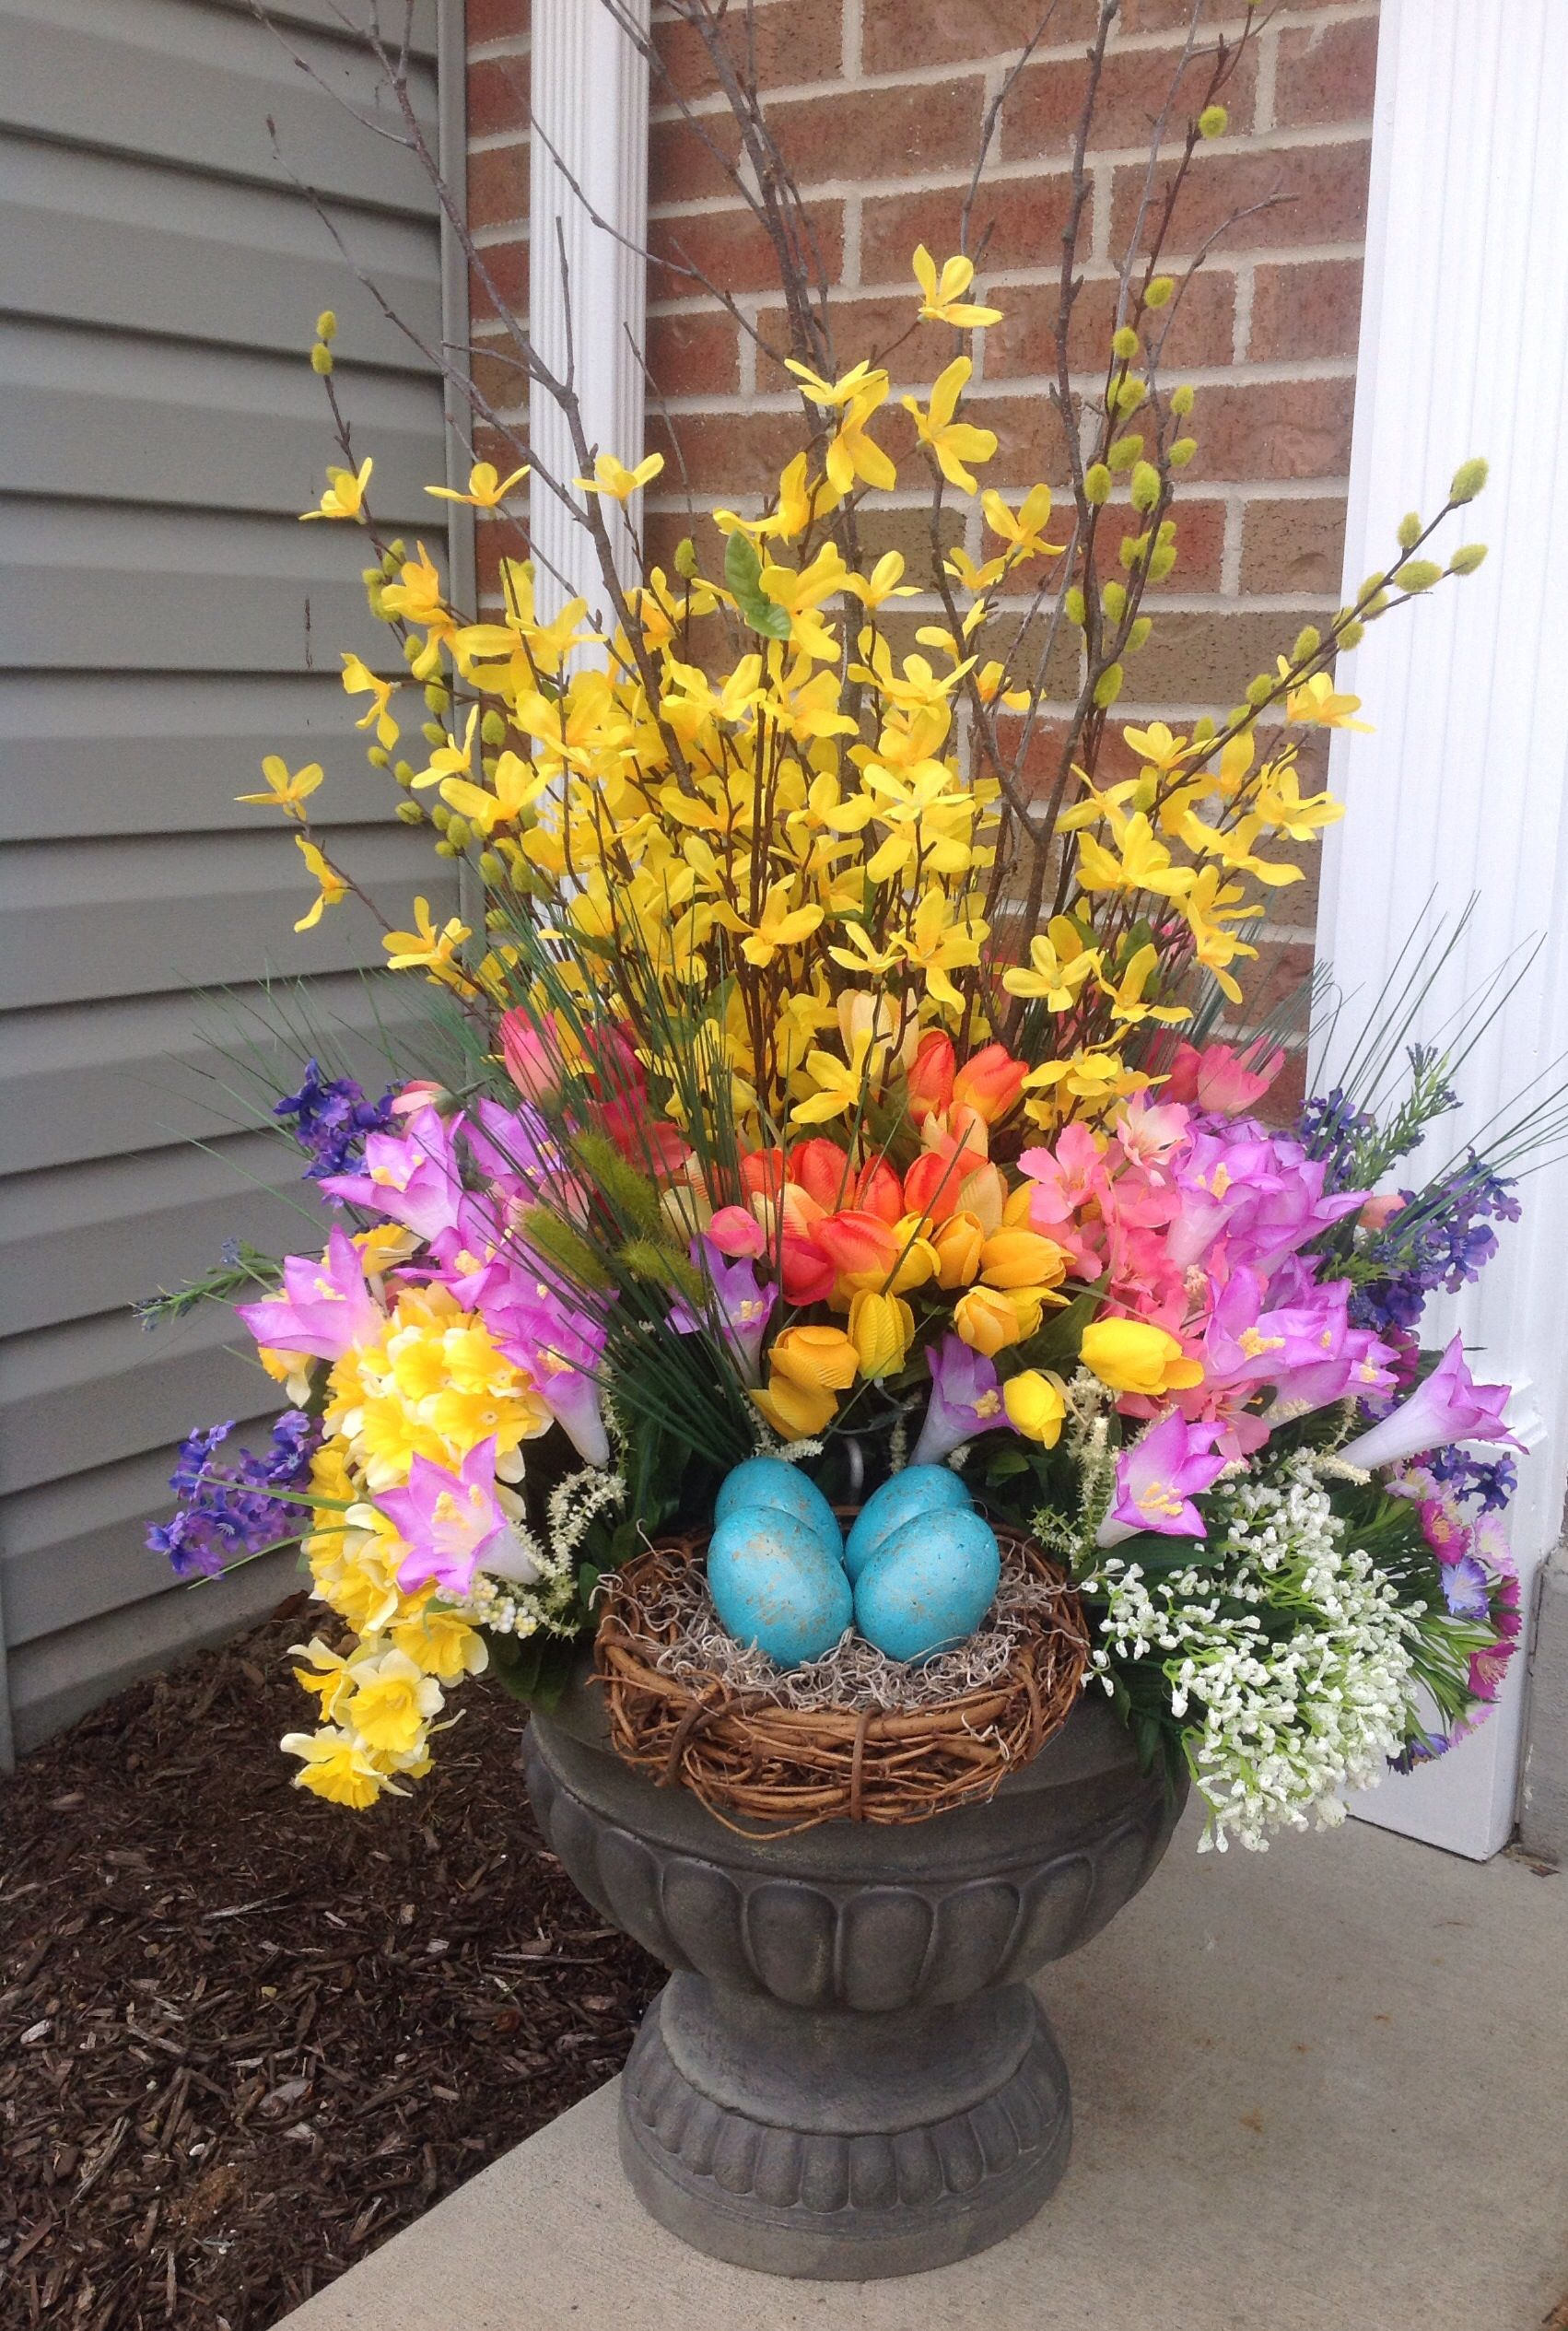 Urn Decorations For Spring Welcome Spring Urn Createdashley Brant Designs  Floral